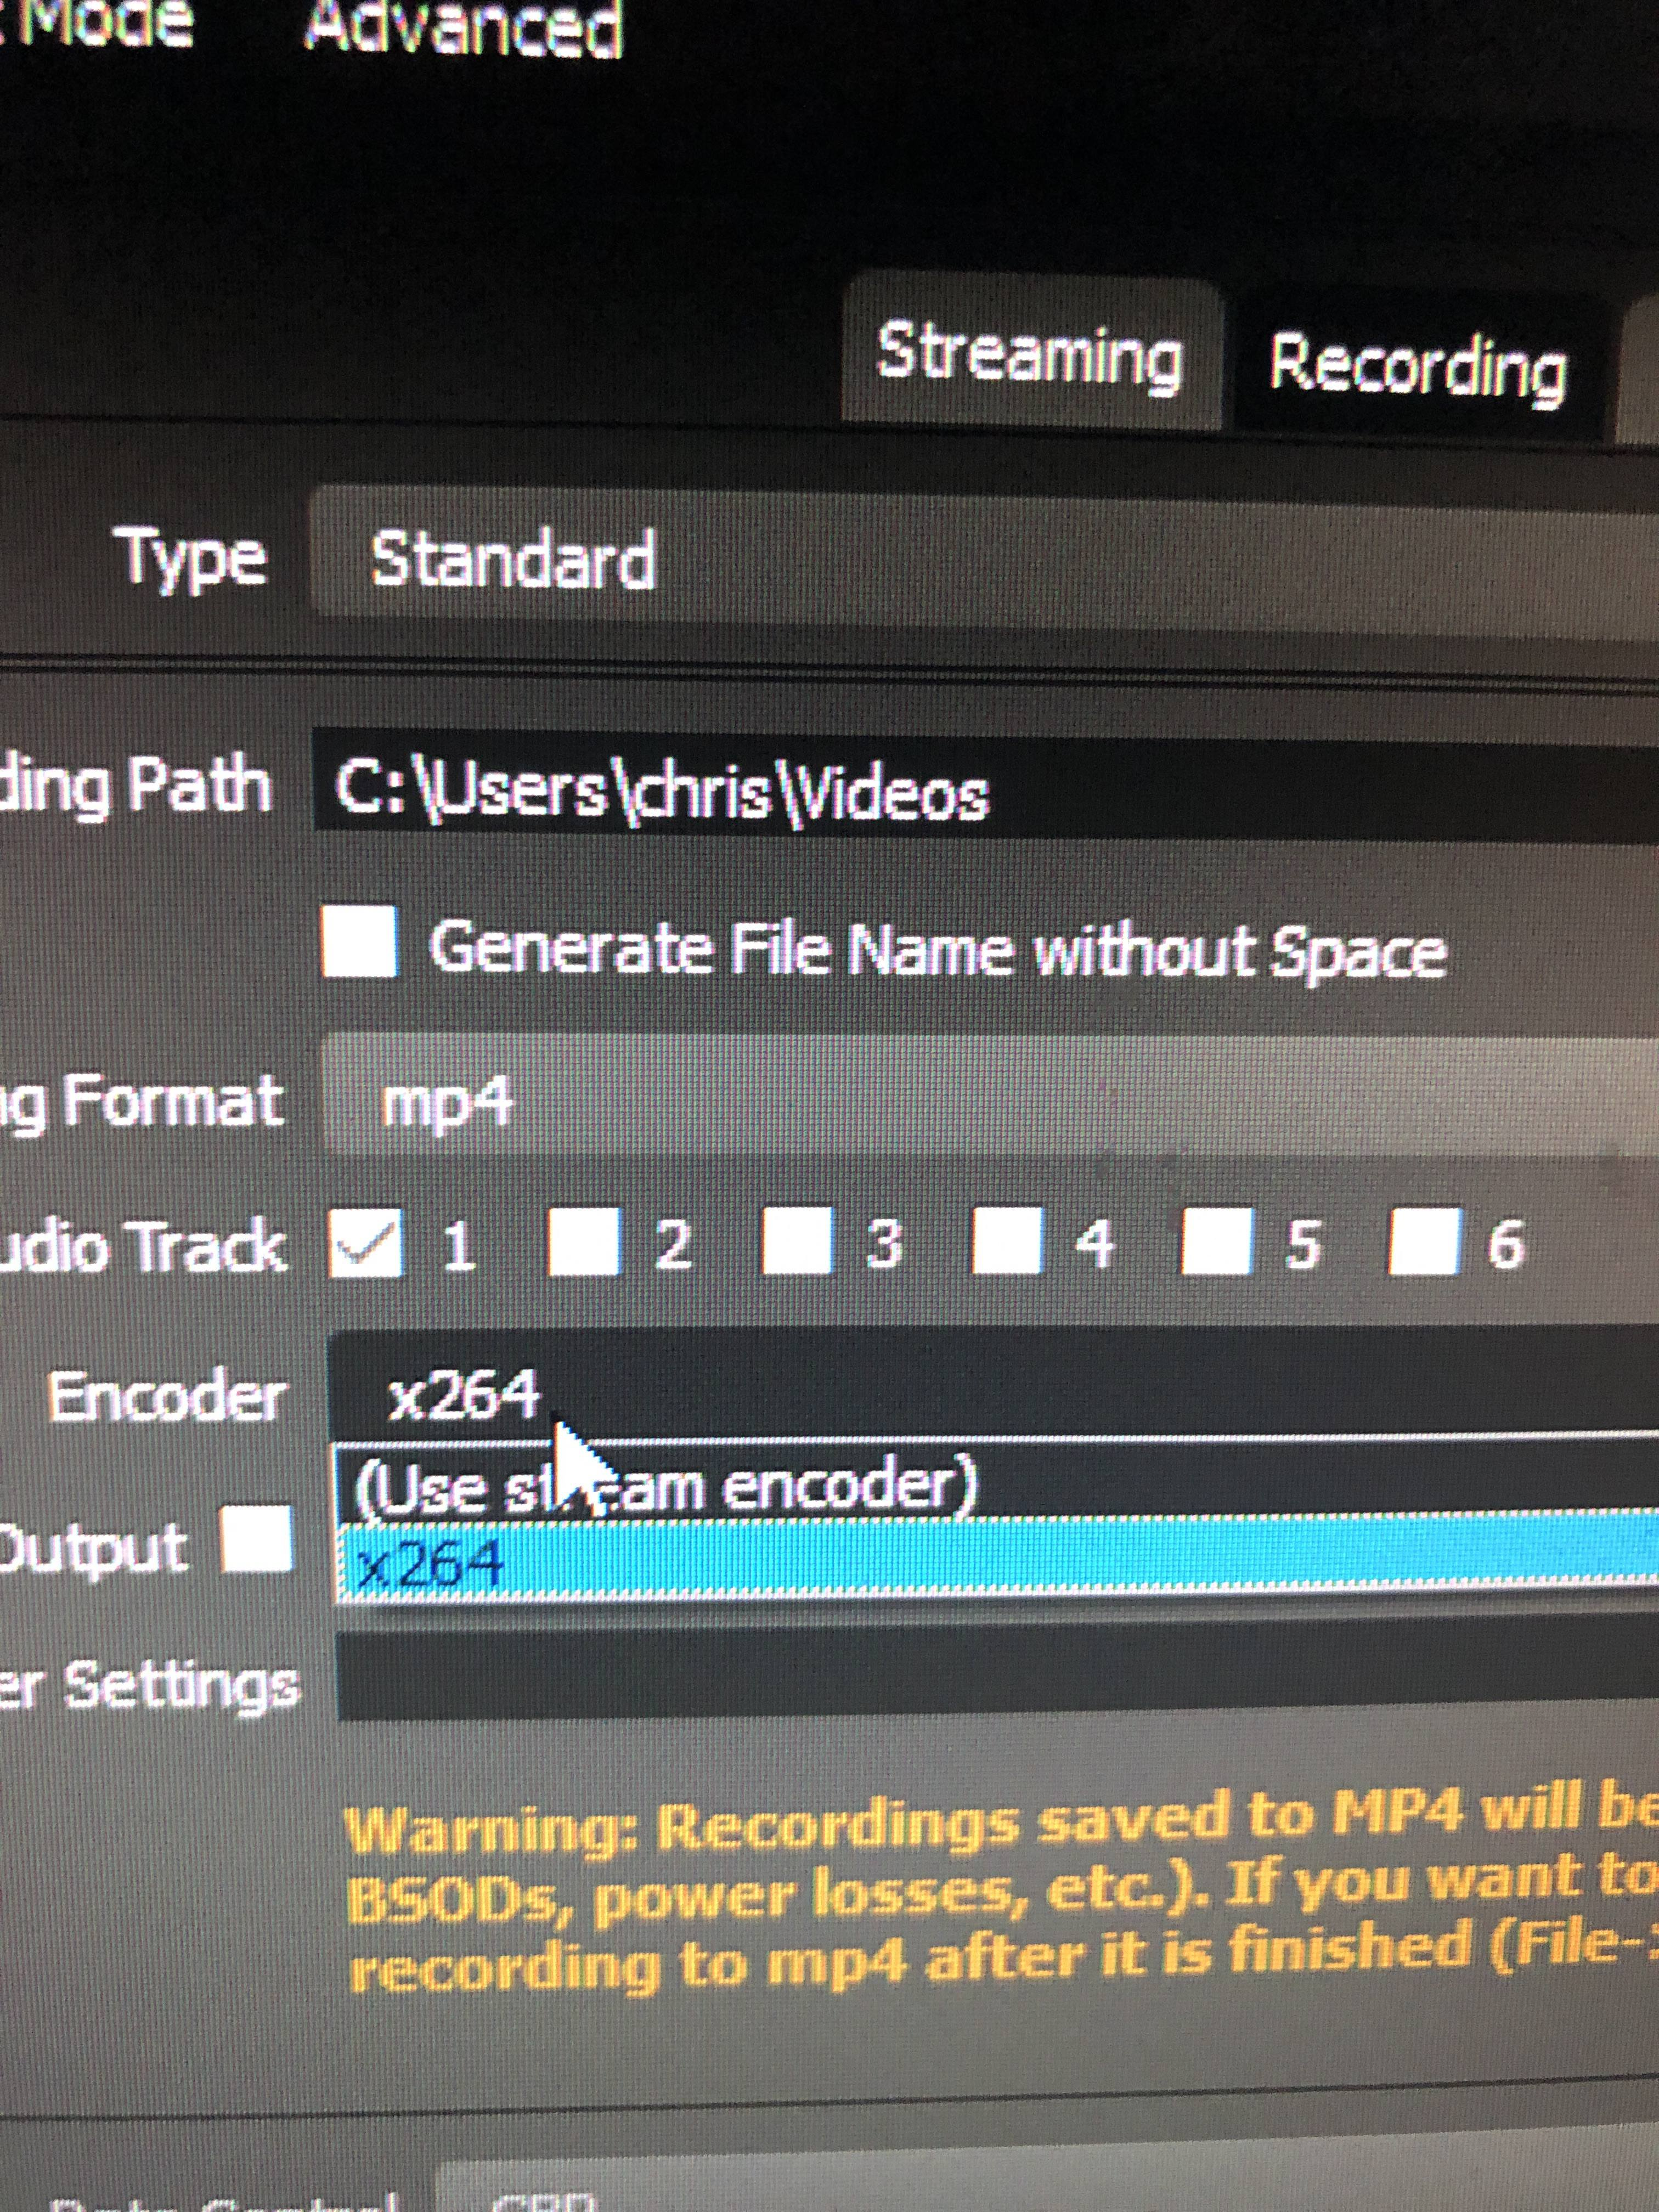 Obs won't recognize my amd encoder - Programs, Apps and